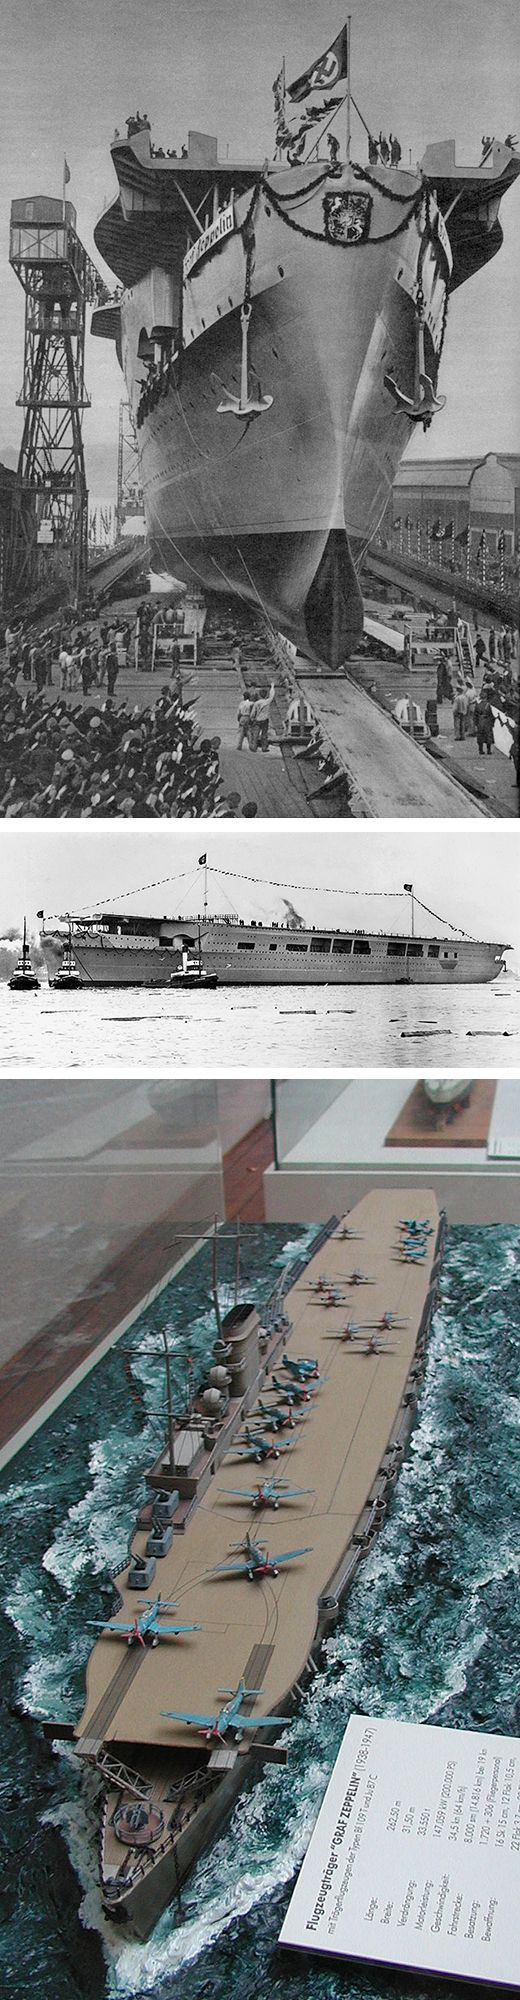 08 Dec 38: Germany's only aircraft carrier, the GRAF ZEPPELIN, is launched, though far from complete. Due to shifting construction priorities necessitated by the coming war, she will never be completed, nor become operational, and will remain in the Baltic for the duration of the war. More: http://scanningwwii.com/a?d=1208&s=381208 #WWII